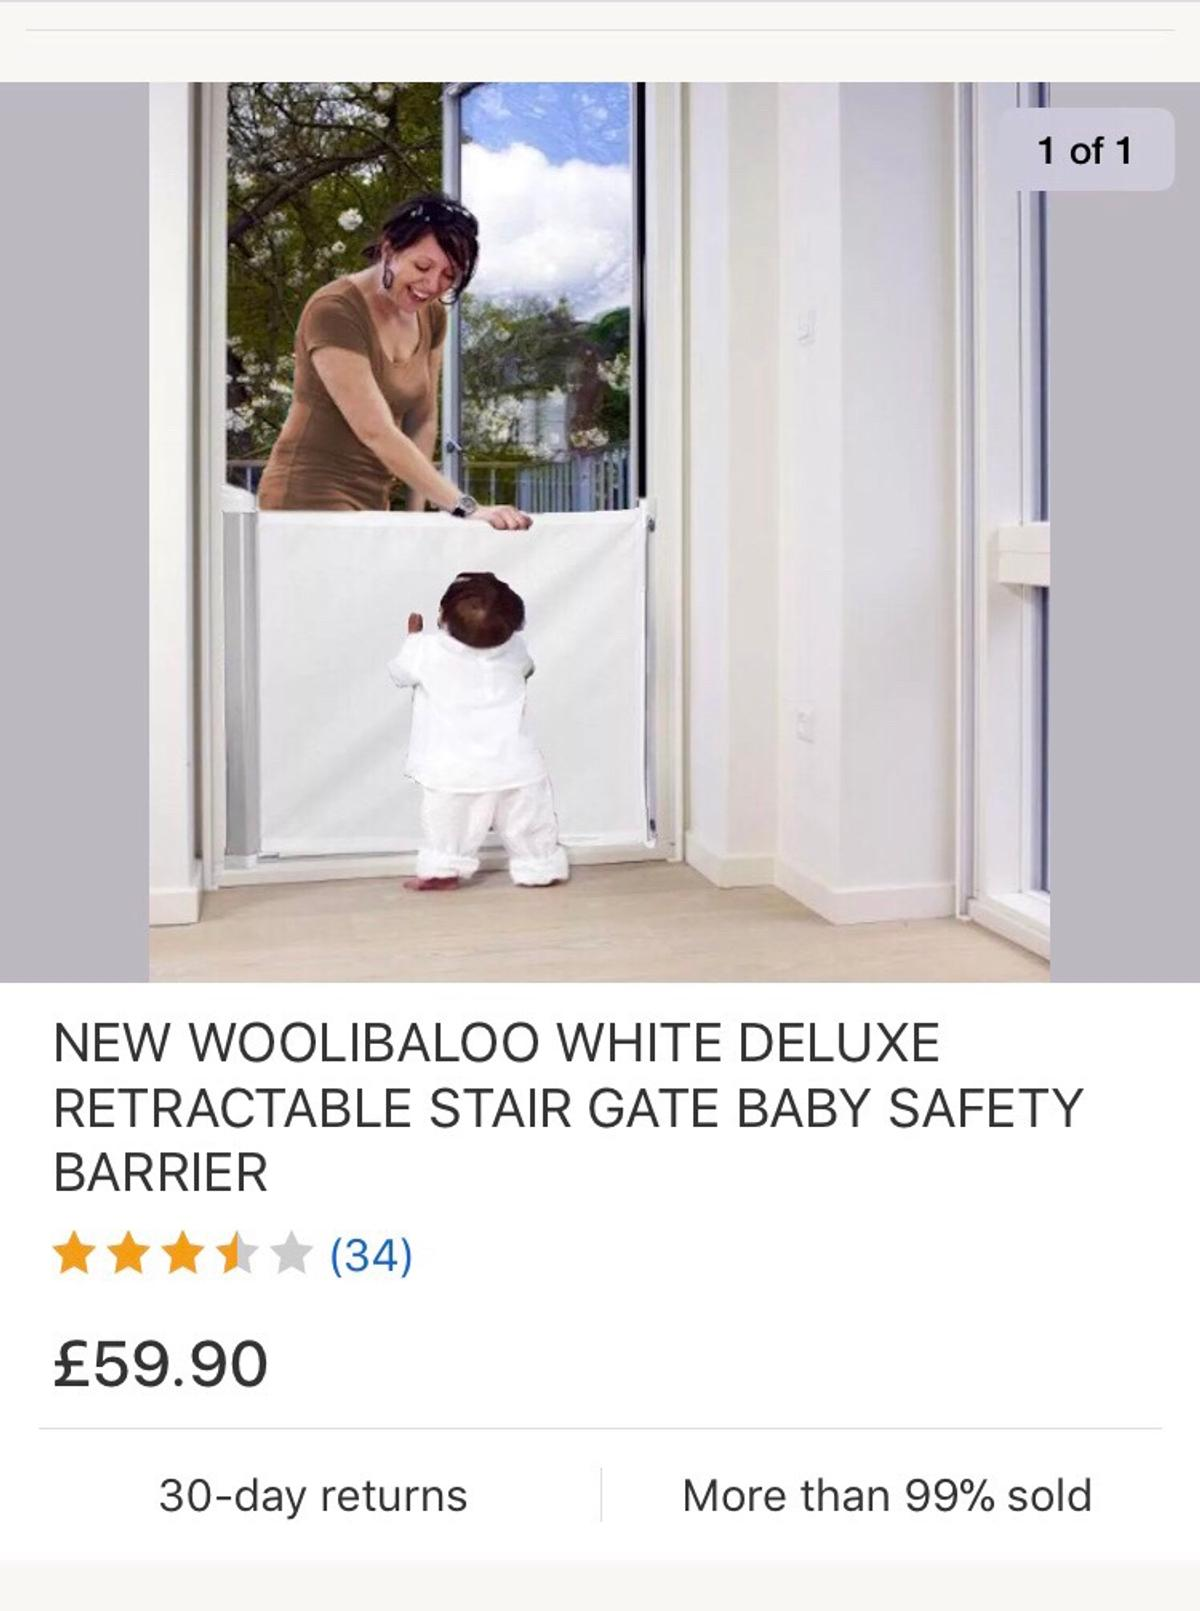 Baby retractable stair gate